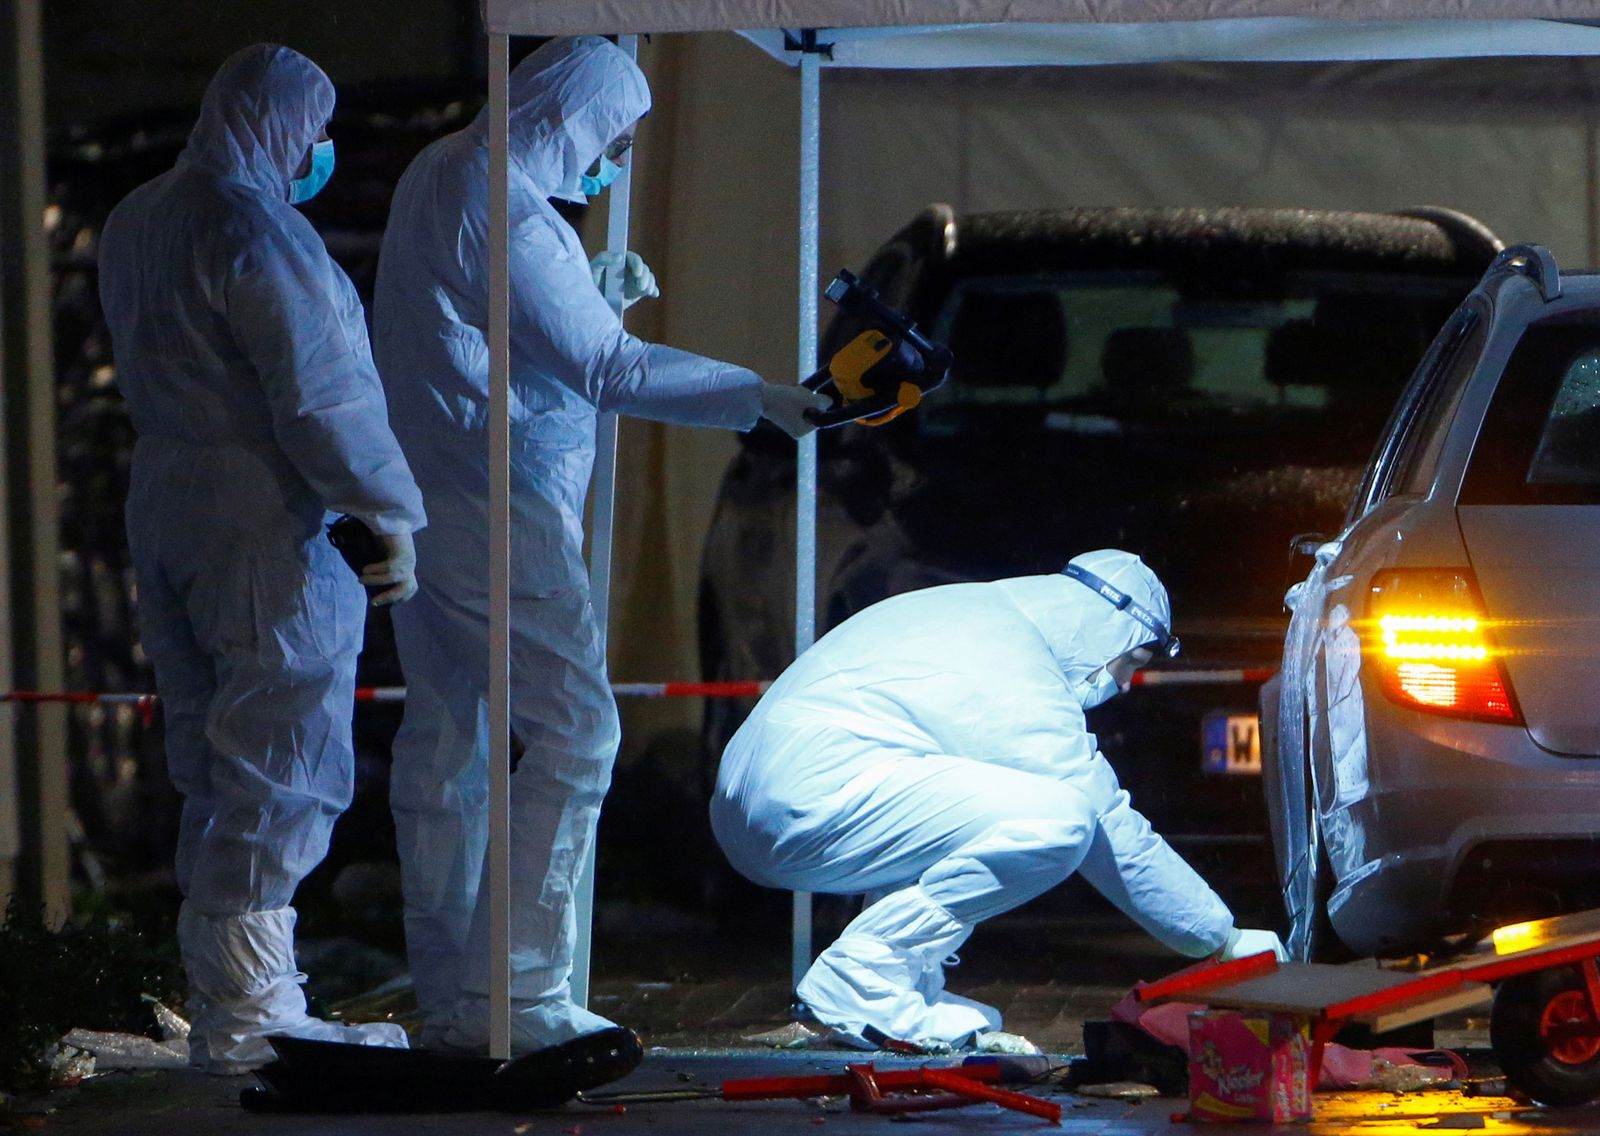 Police forensic officers work at the scene after a car ploughed into a carnival parade injuring several people in Volkmarsen